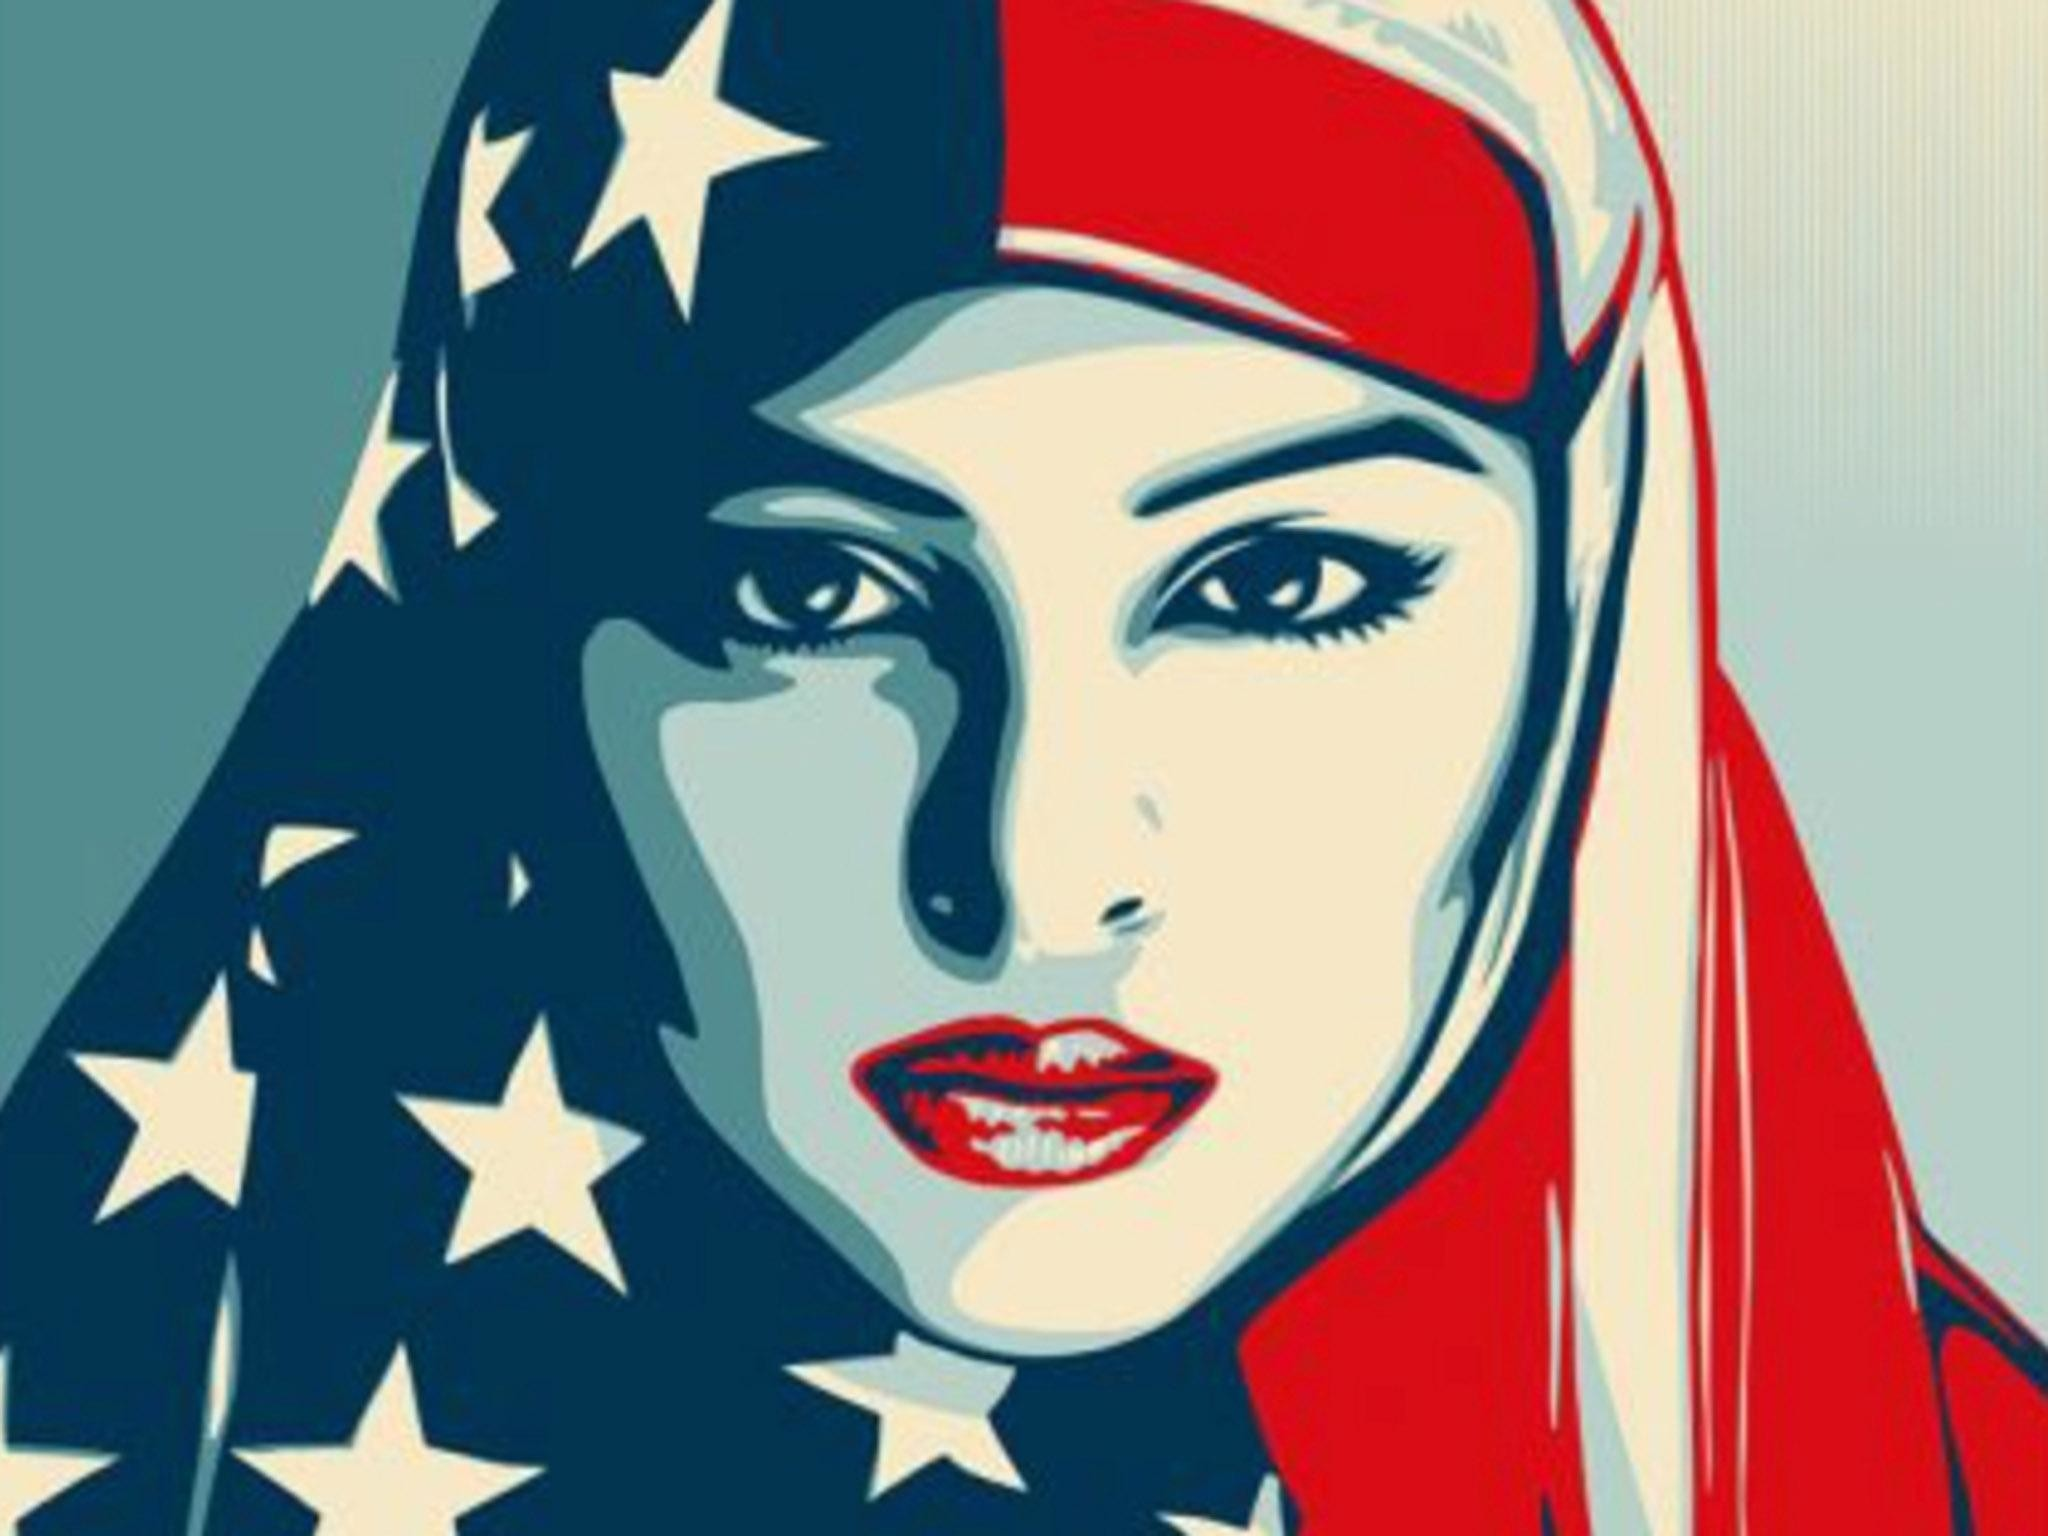 Shepard Fairey's inauguration posters may define political art in Trump era  | The Independent